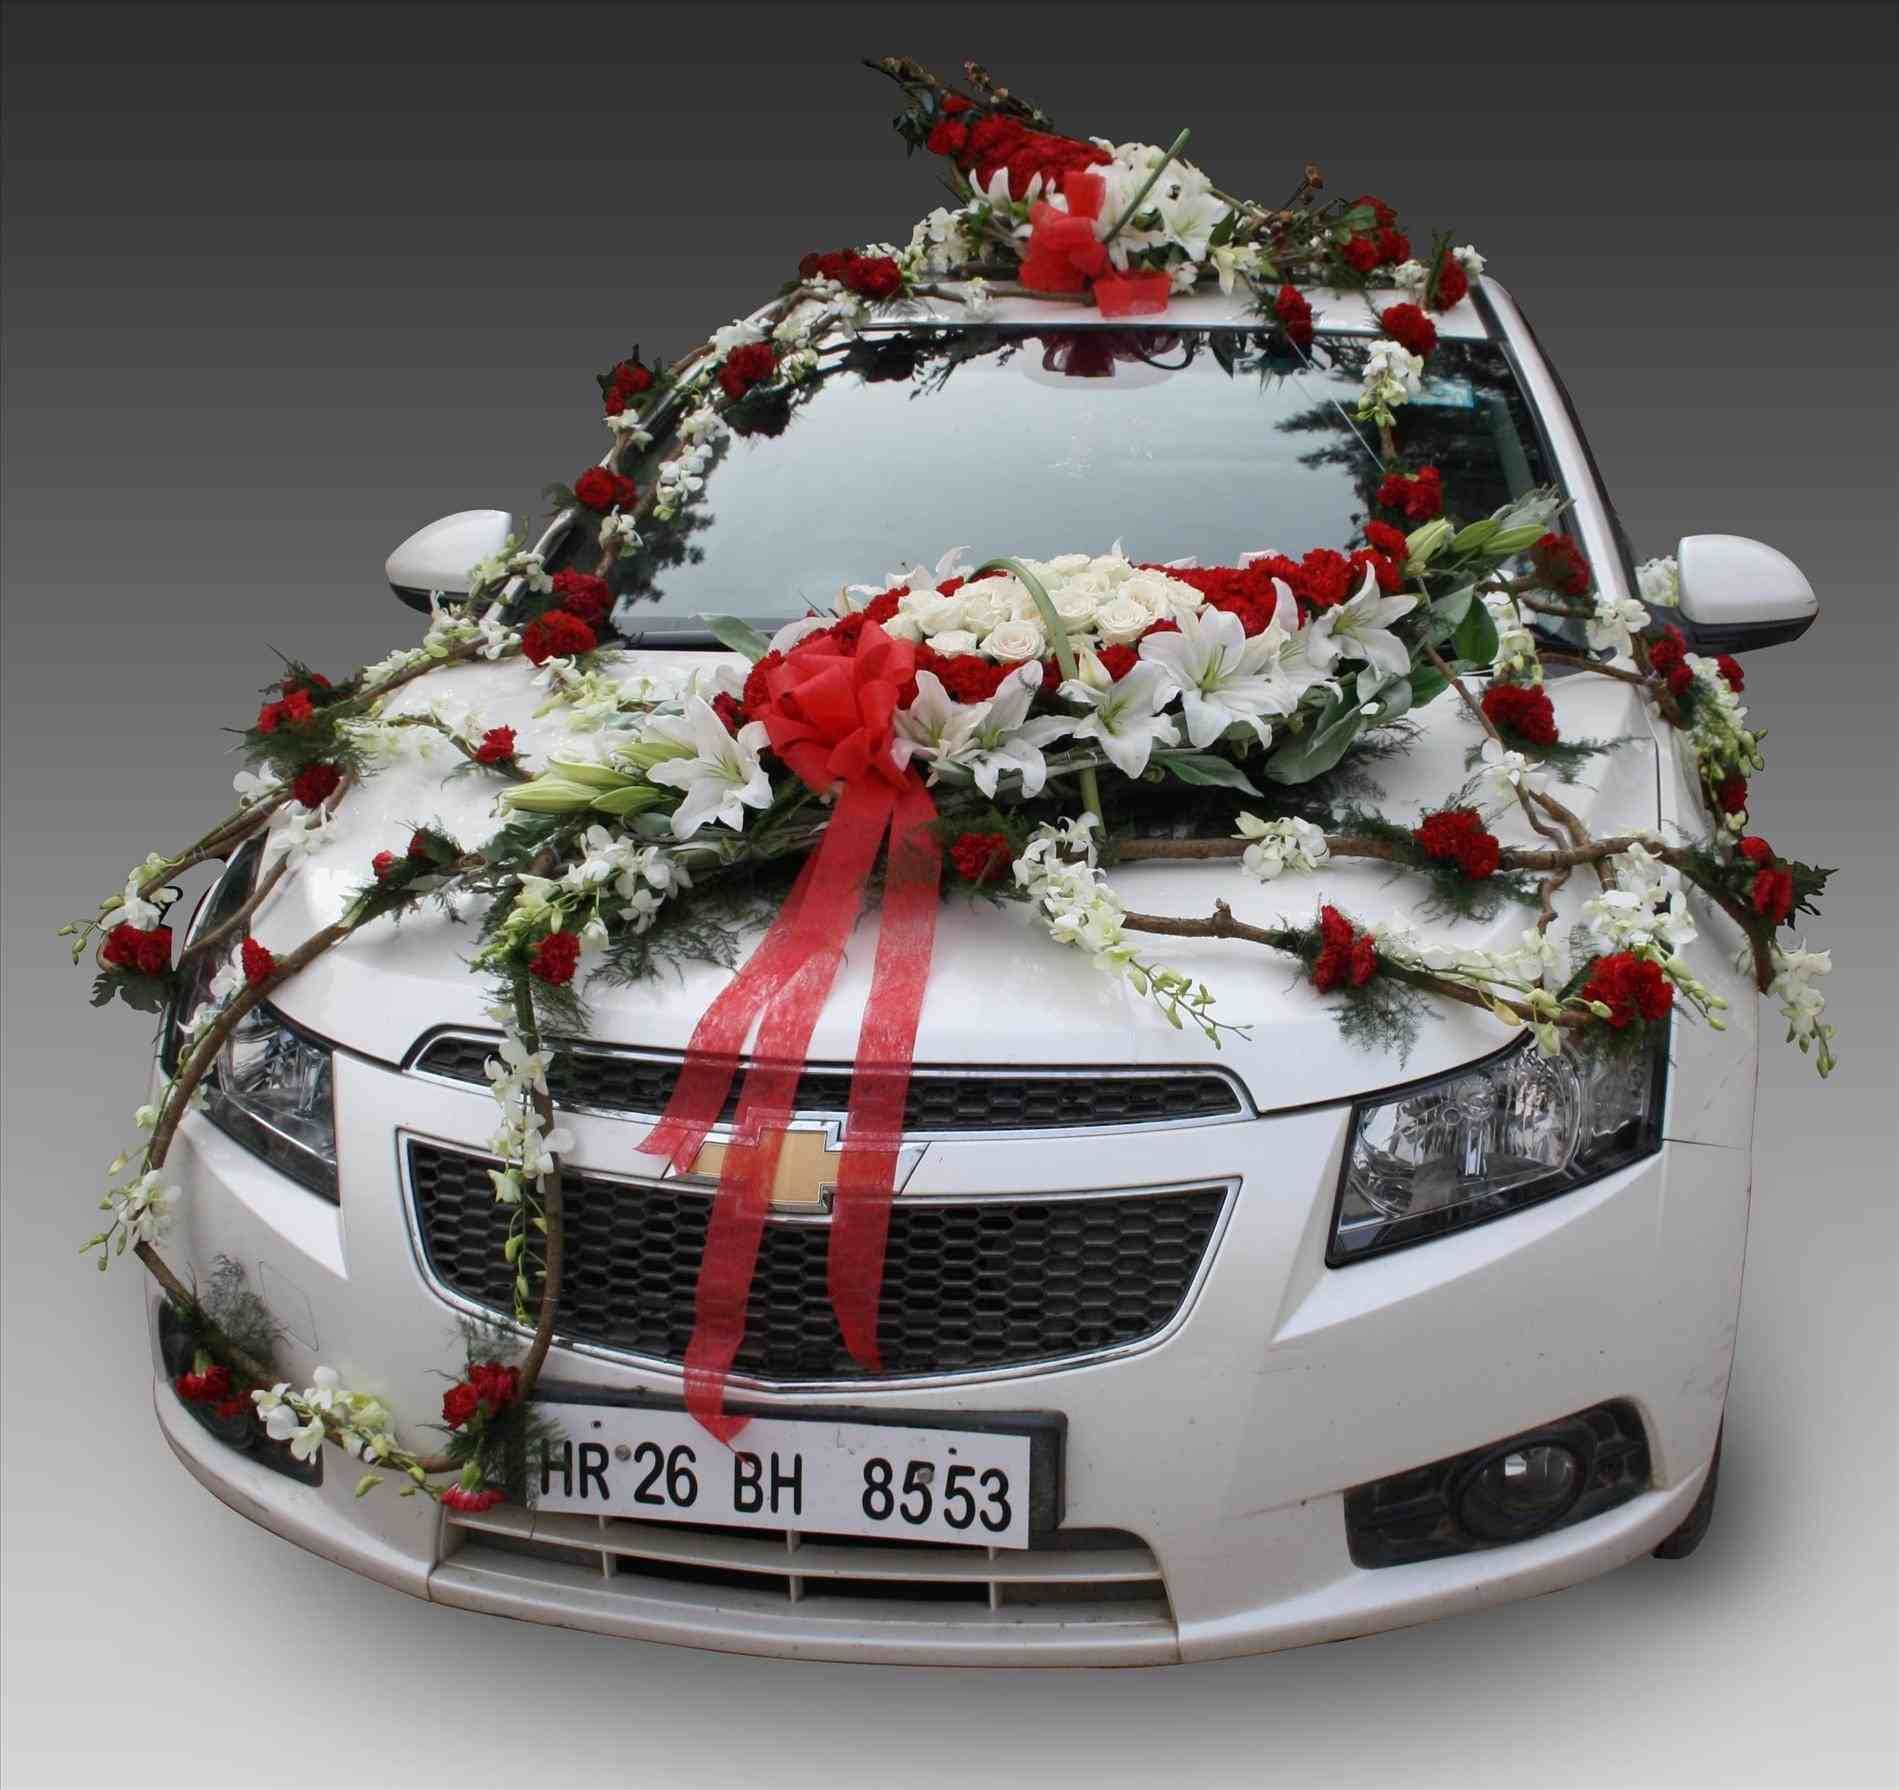 Indian Wedding Car Decoration Ideas In 2018 Home Ideas Pinterest